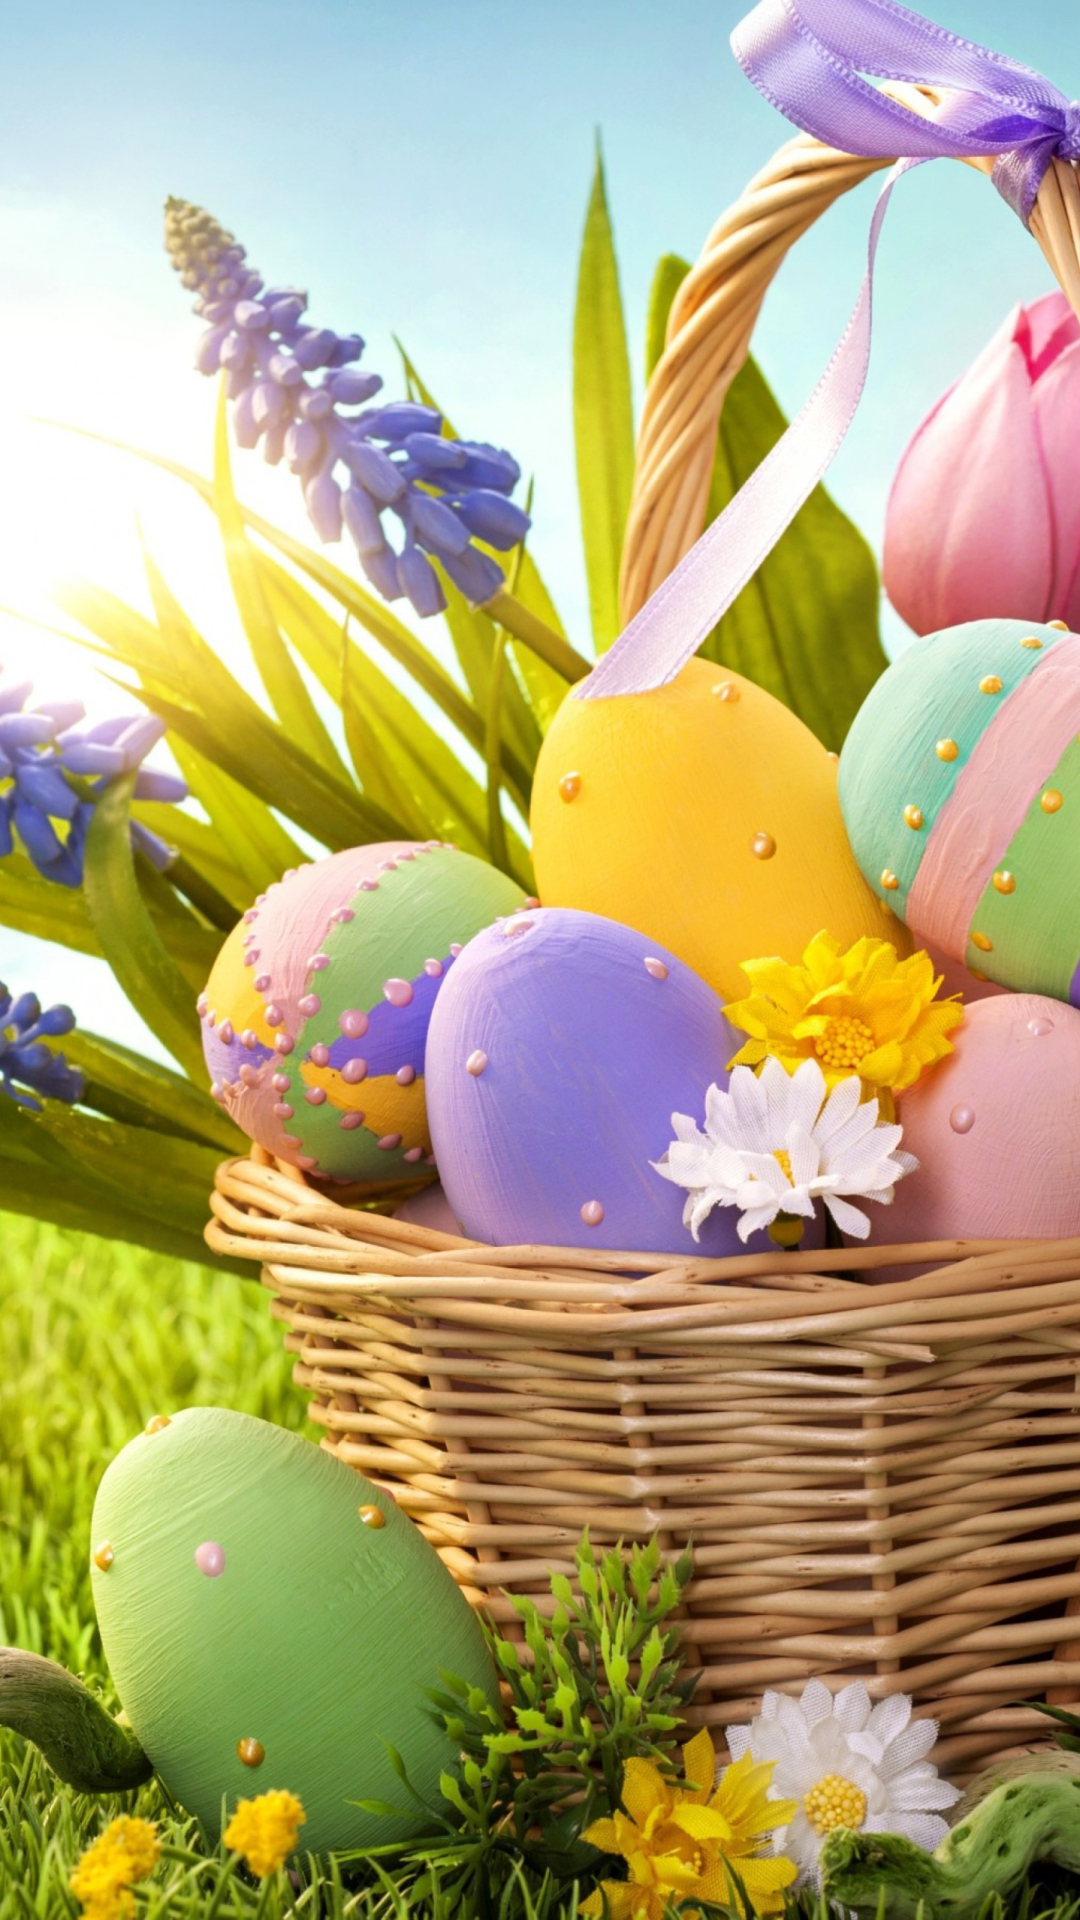 Basket With Easter Eggs wallpaper 1080x1920